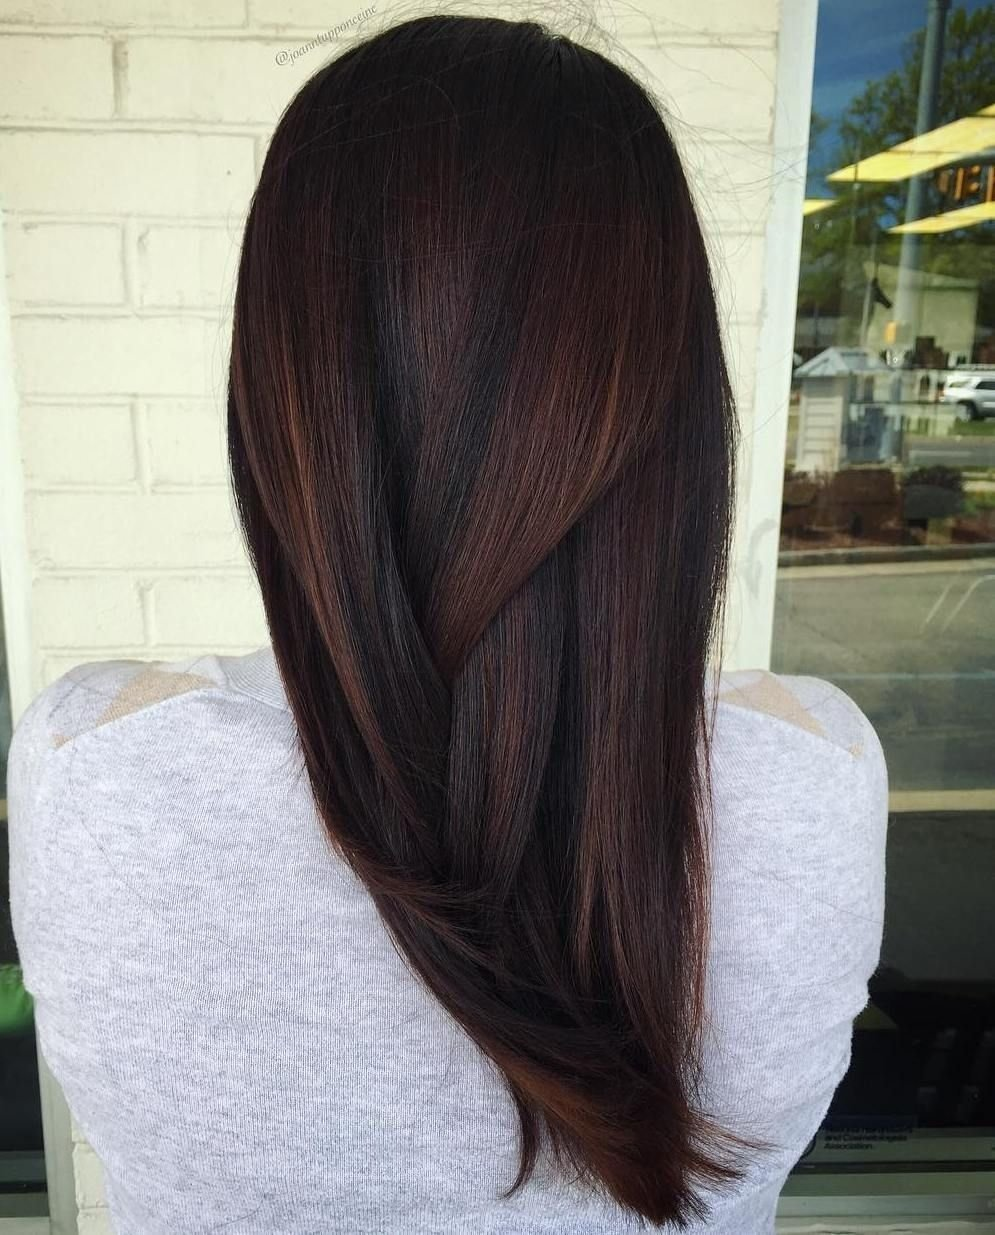 10 Fabulous Chocolate Brown Hair Color Ideas 60 chocolate brown hair color ideas for brunettes chocolate brown 2020